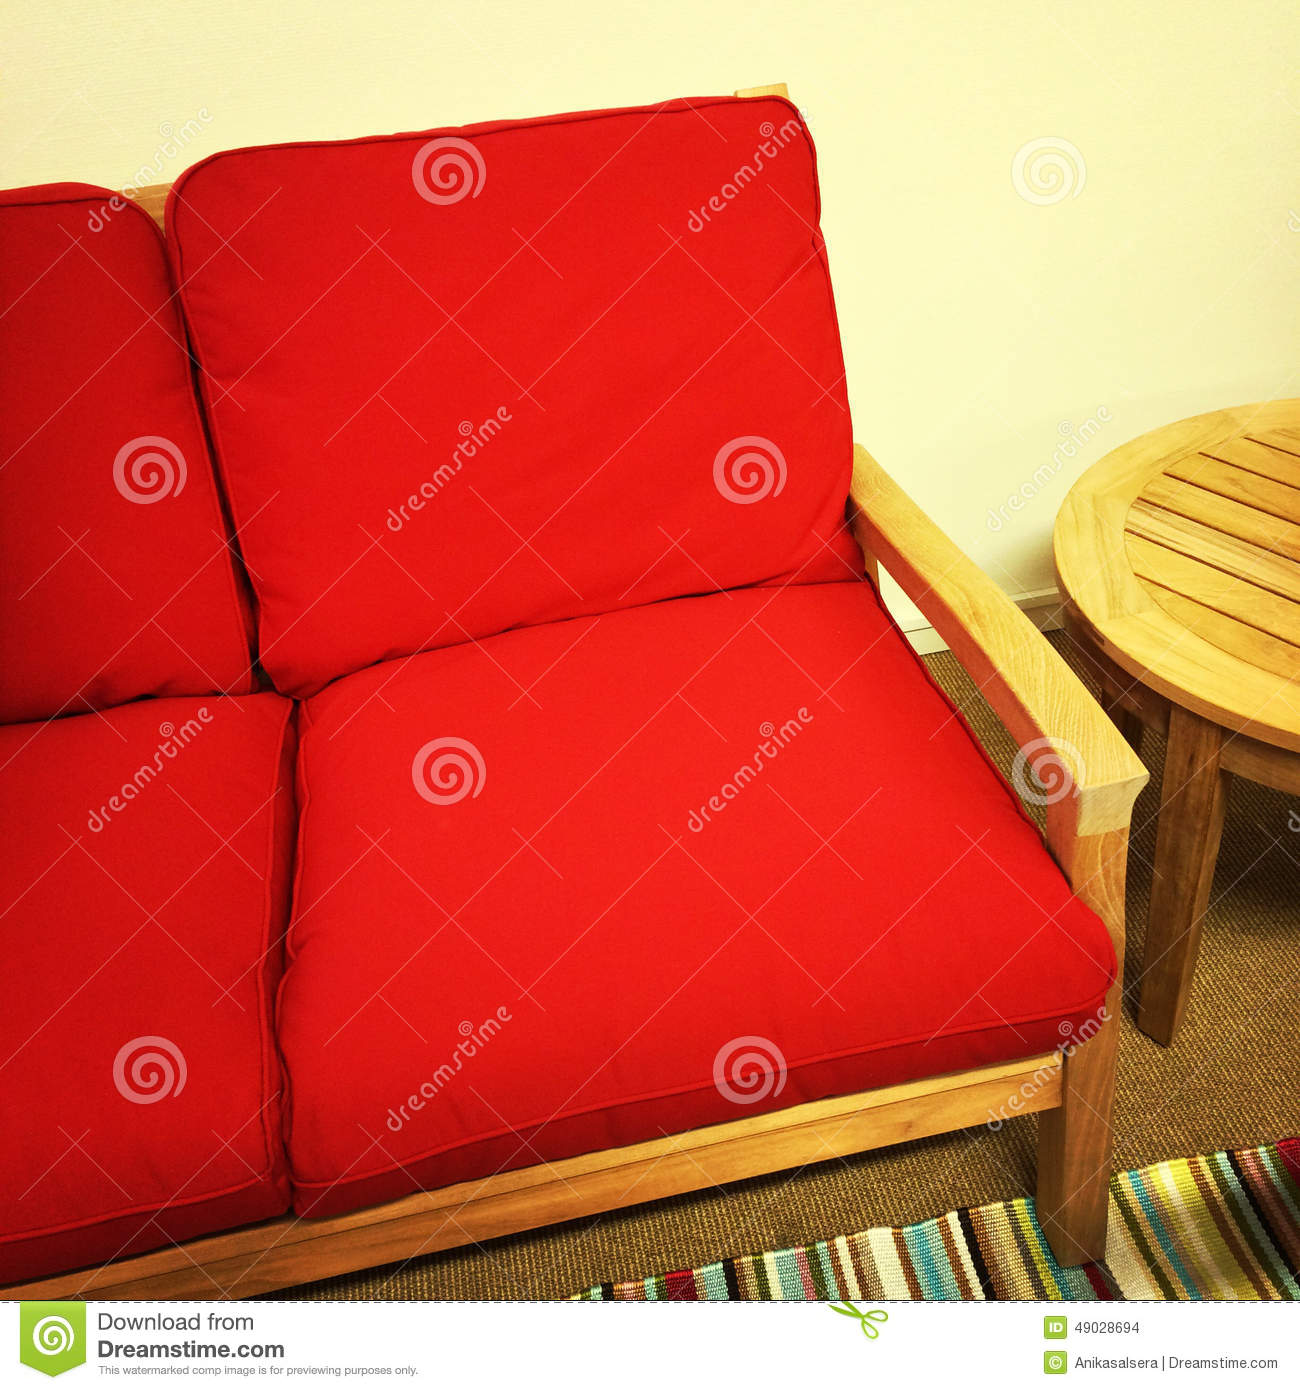 Excellent Red Sofa And Wooden Table Stock Photo Image Of Bright Download Free Architecture Designs Scobabritishbridgeorg